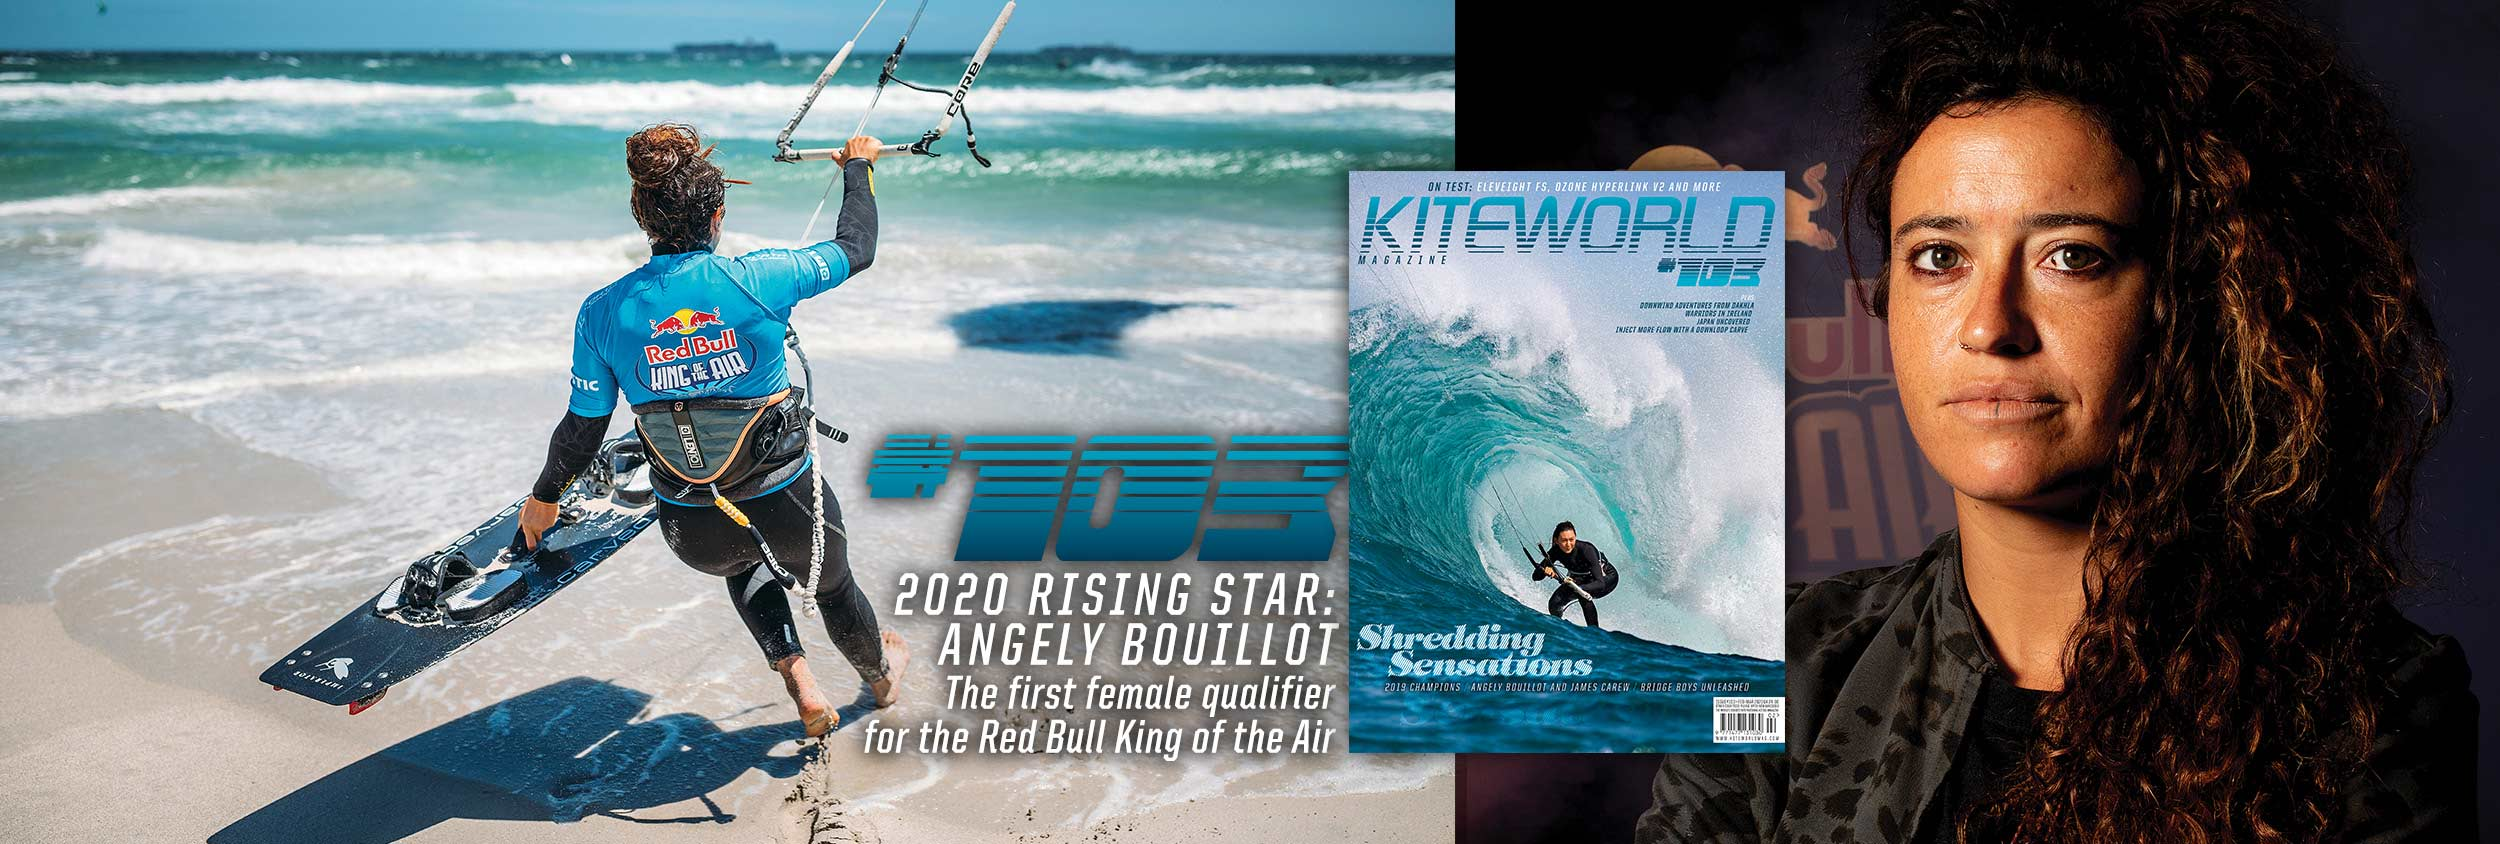 Angely Bouillot King of the Air female kitesurfer